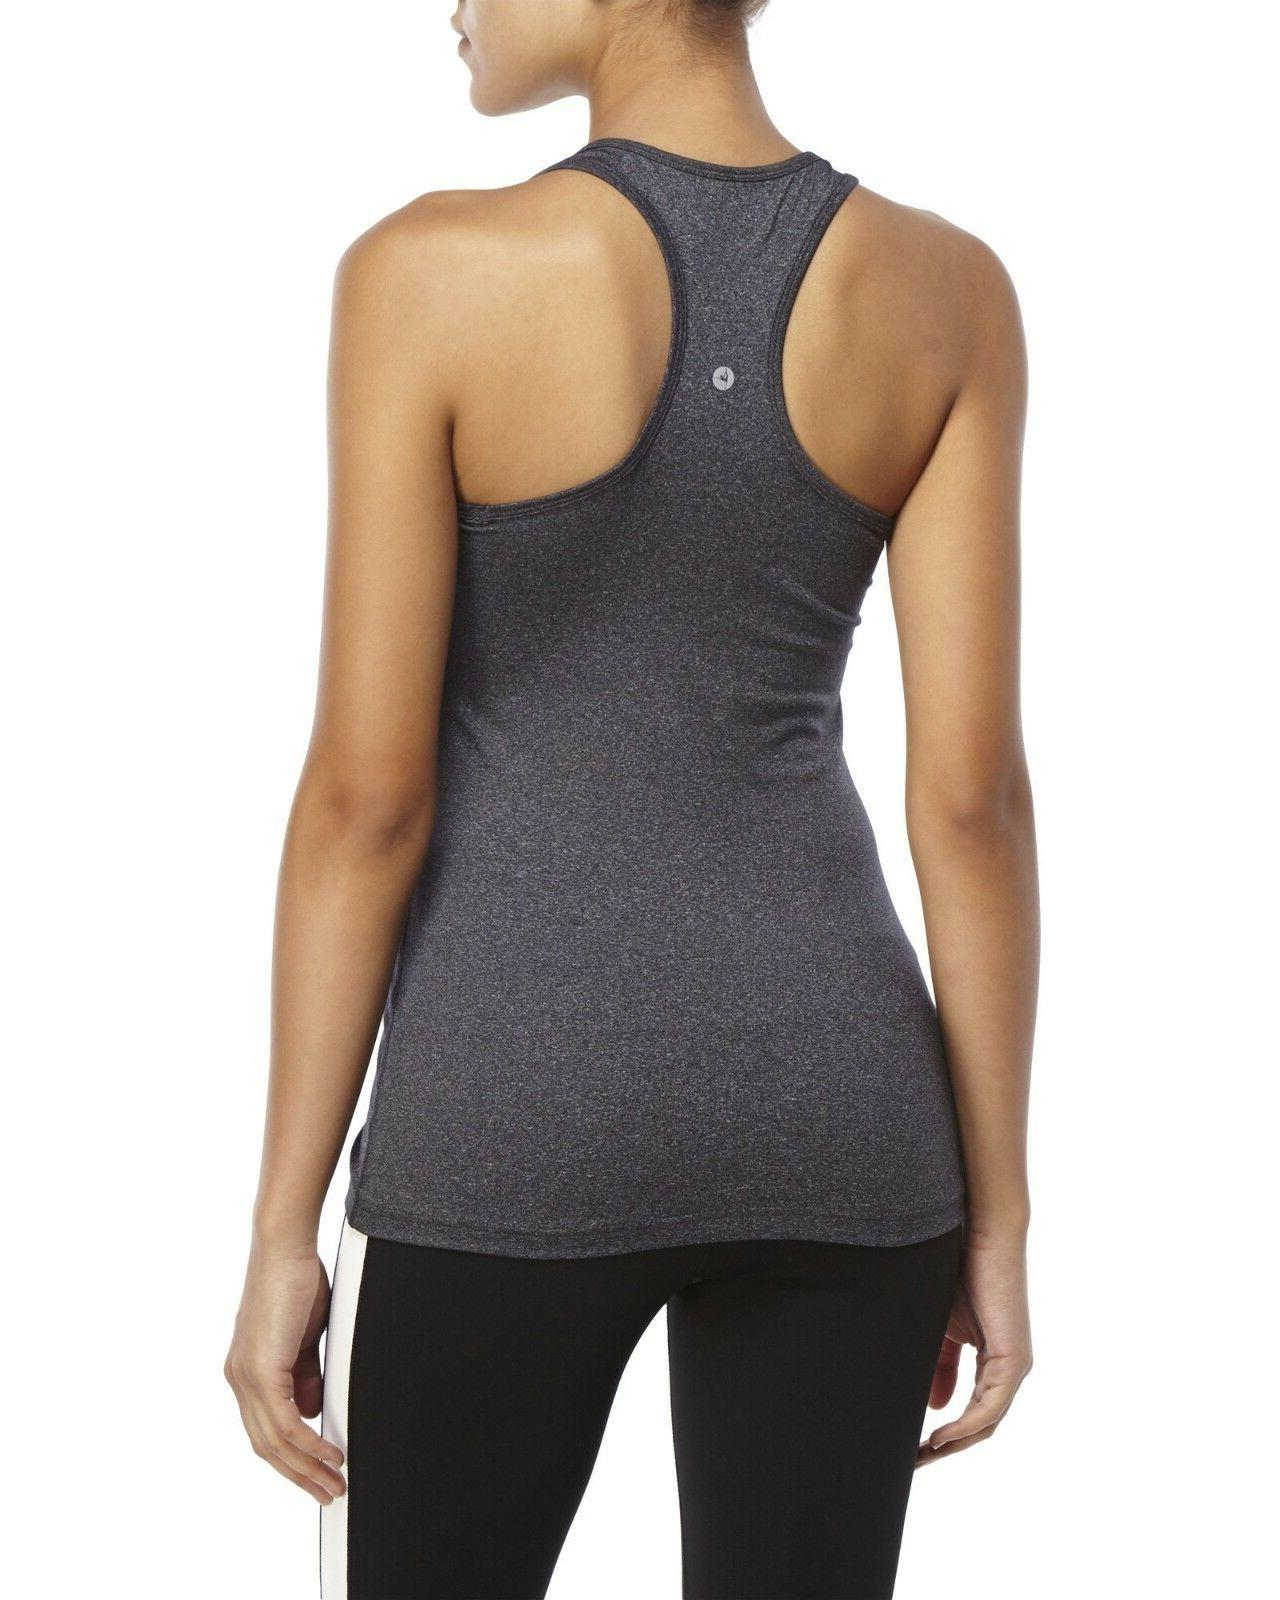 90 DEGREE REFLEX Women's Tank Top. NWT